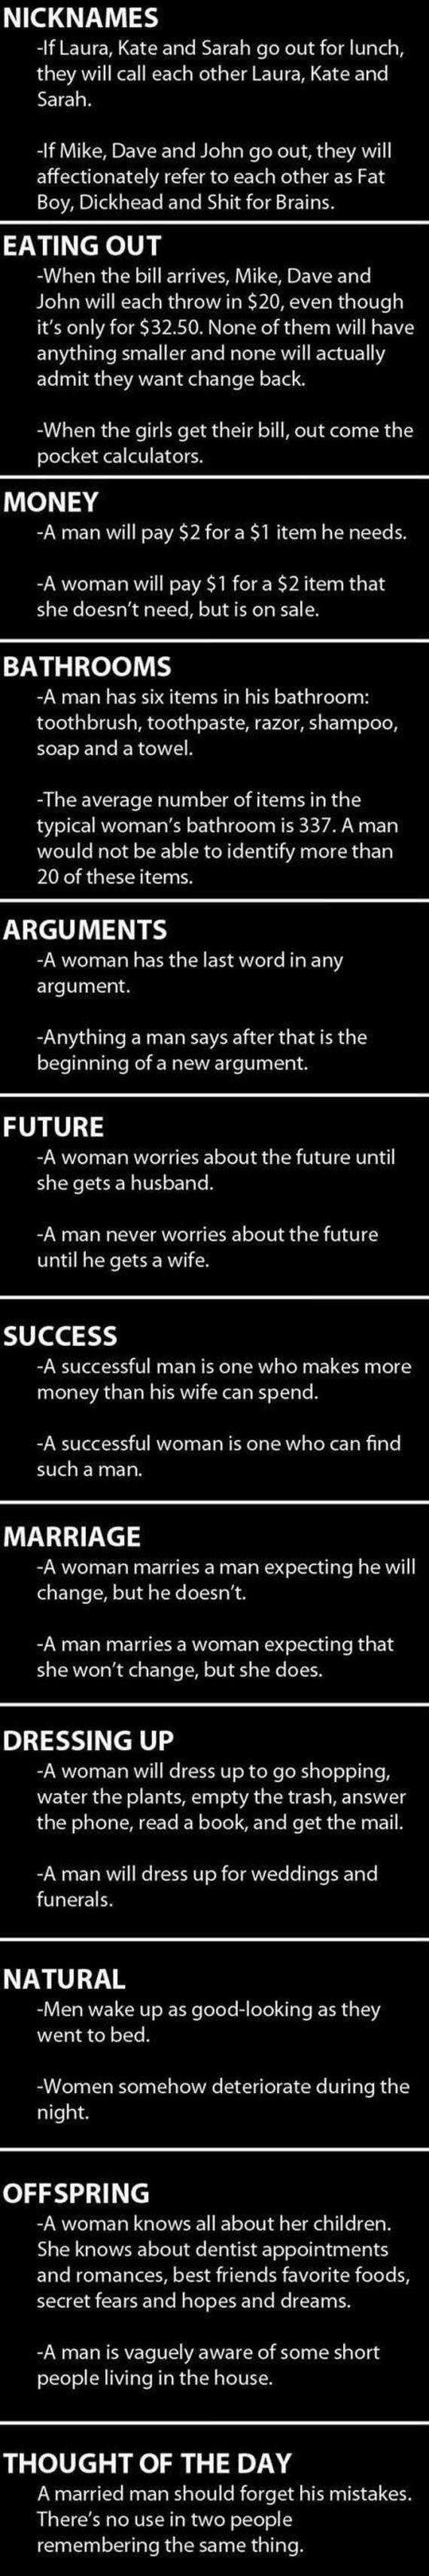 men_vs_women